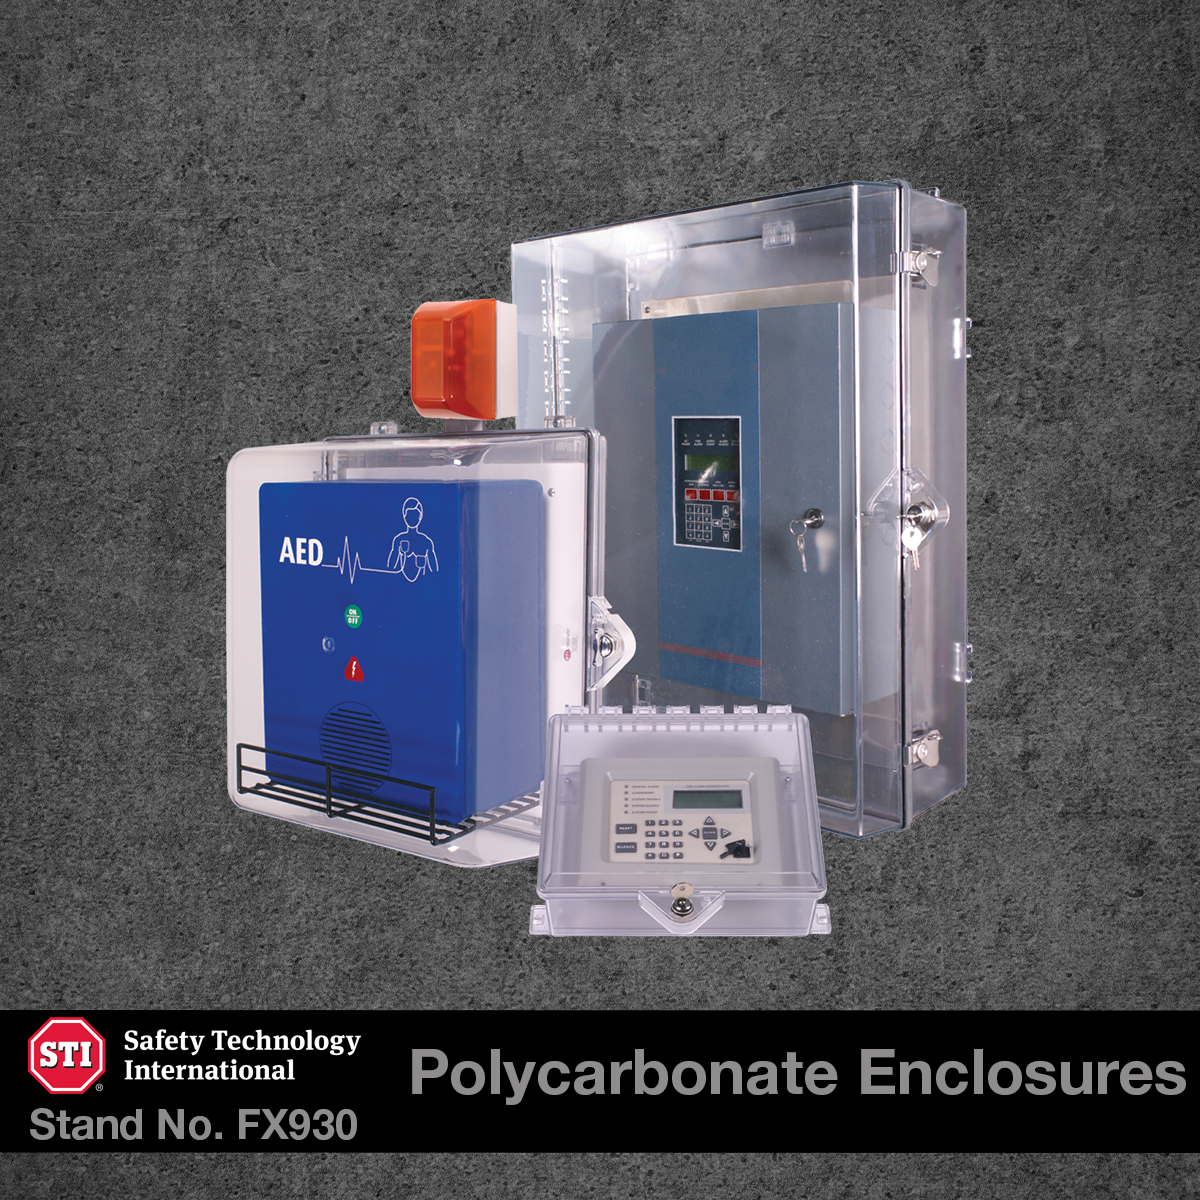 Environmental Covers & Enclosures